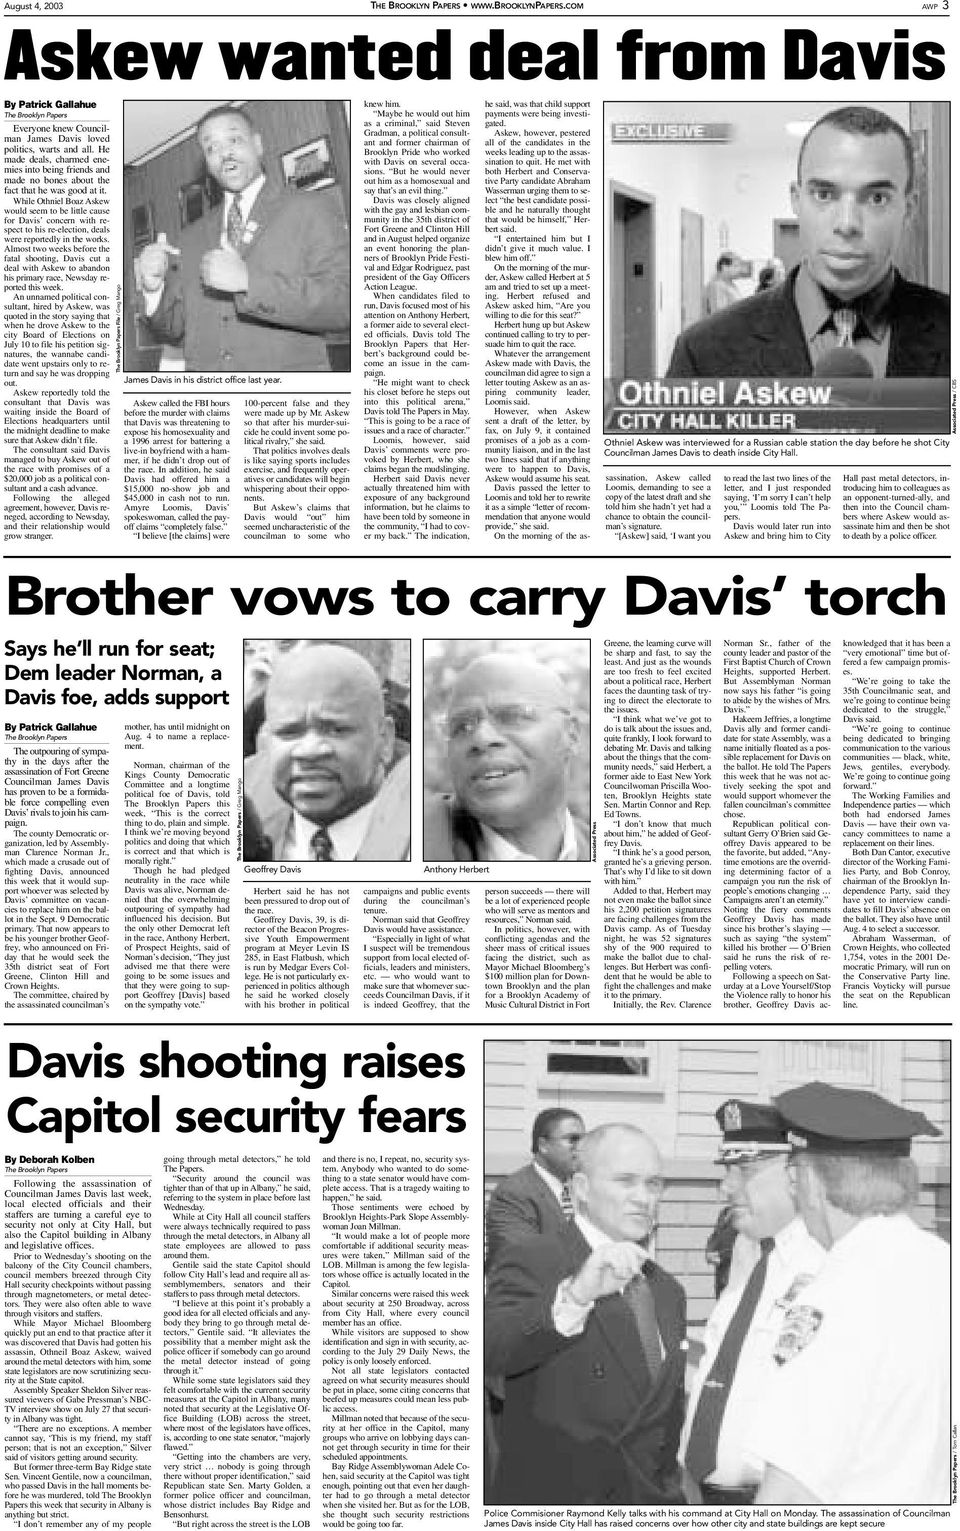 While Othniel Boaz Askew would seem to be little cause for Davis concern with respect to his re-election, deals were reportedly in the works.